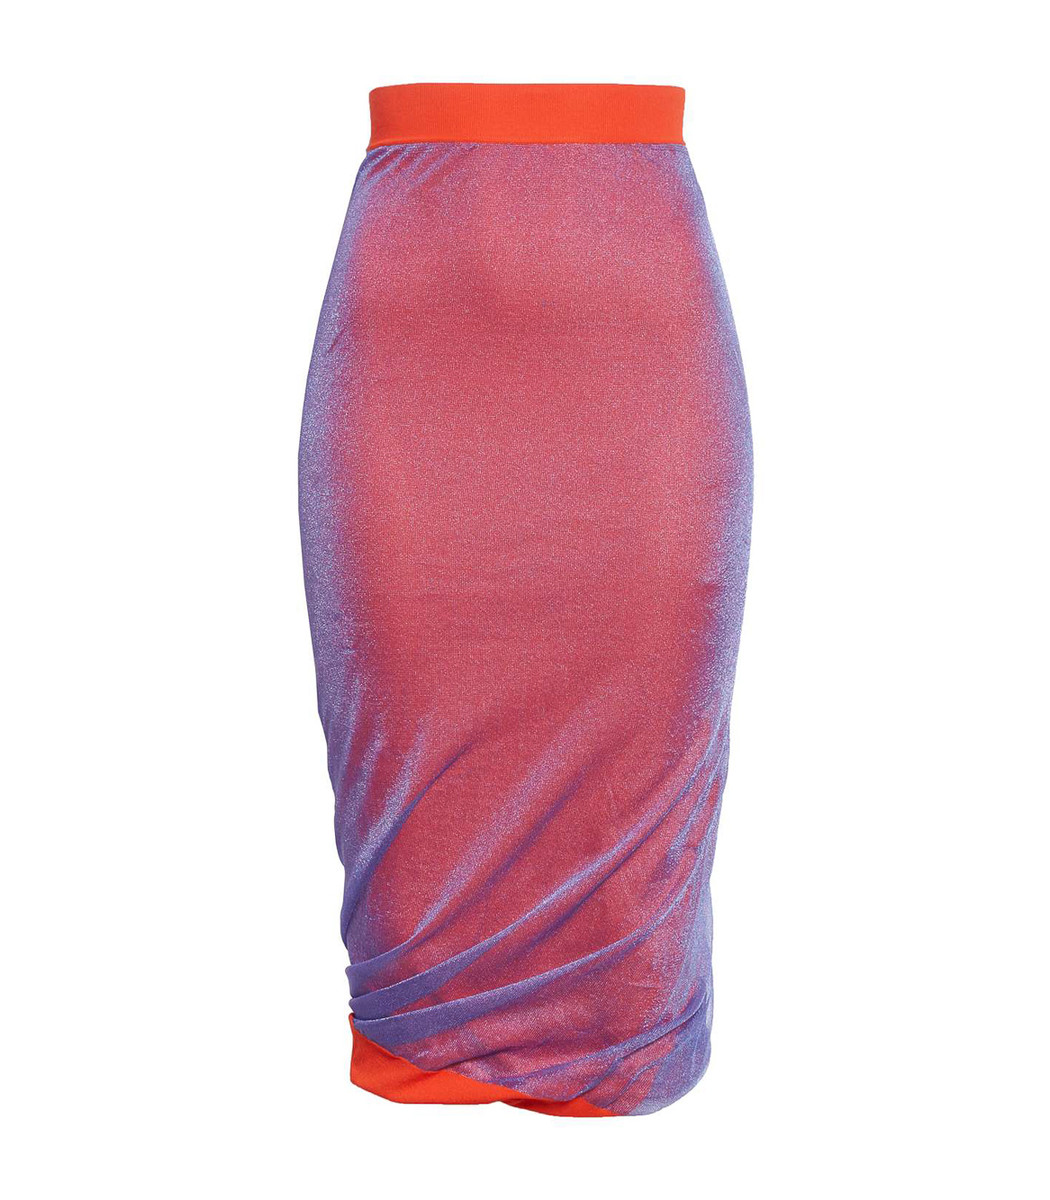 Atlein Pink Pencil Knitted Dress